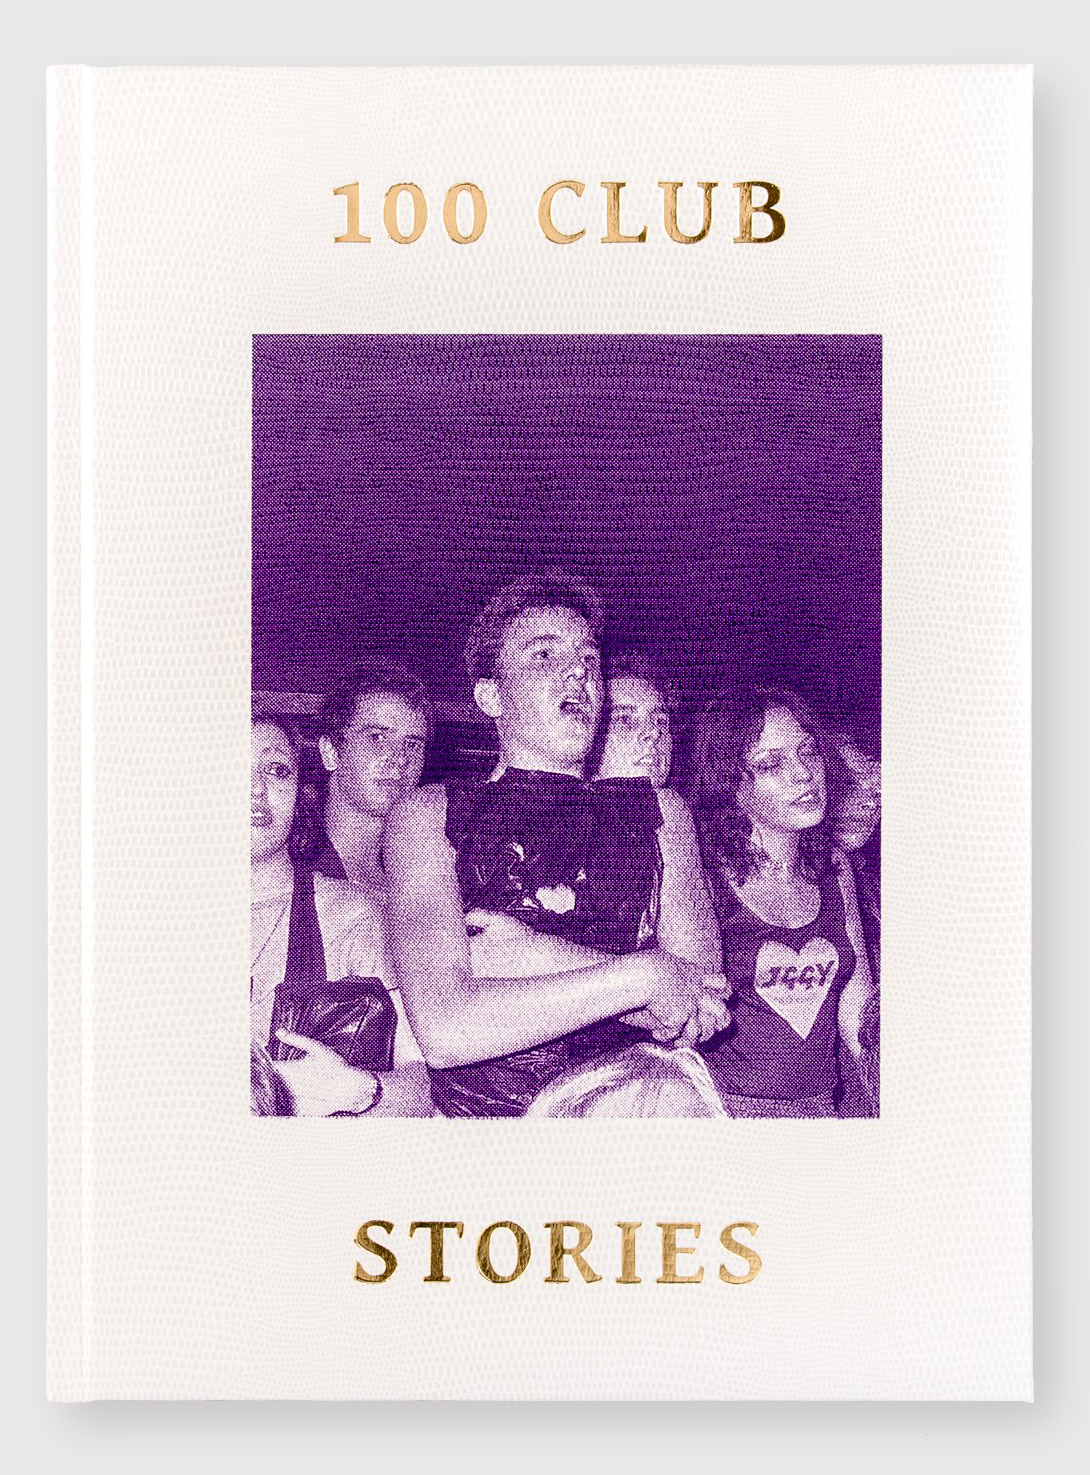 100_Club_Stories_-_Cover_2048x2048.jpg